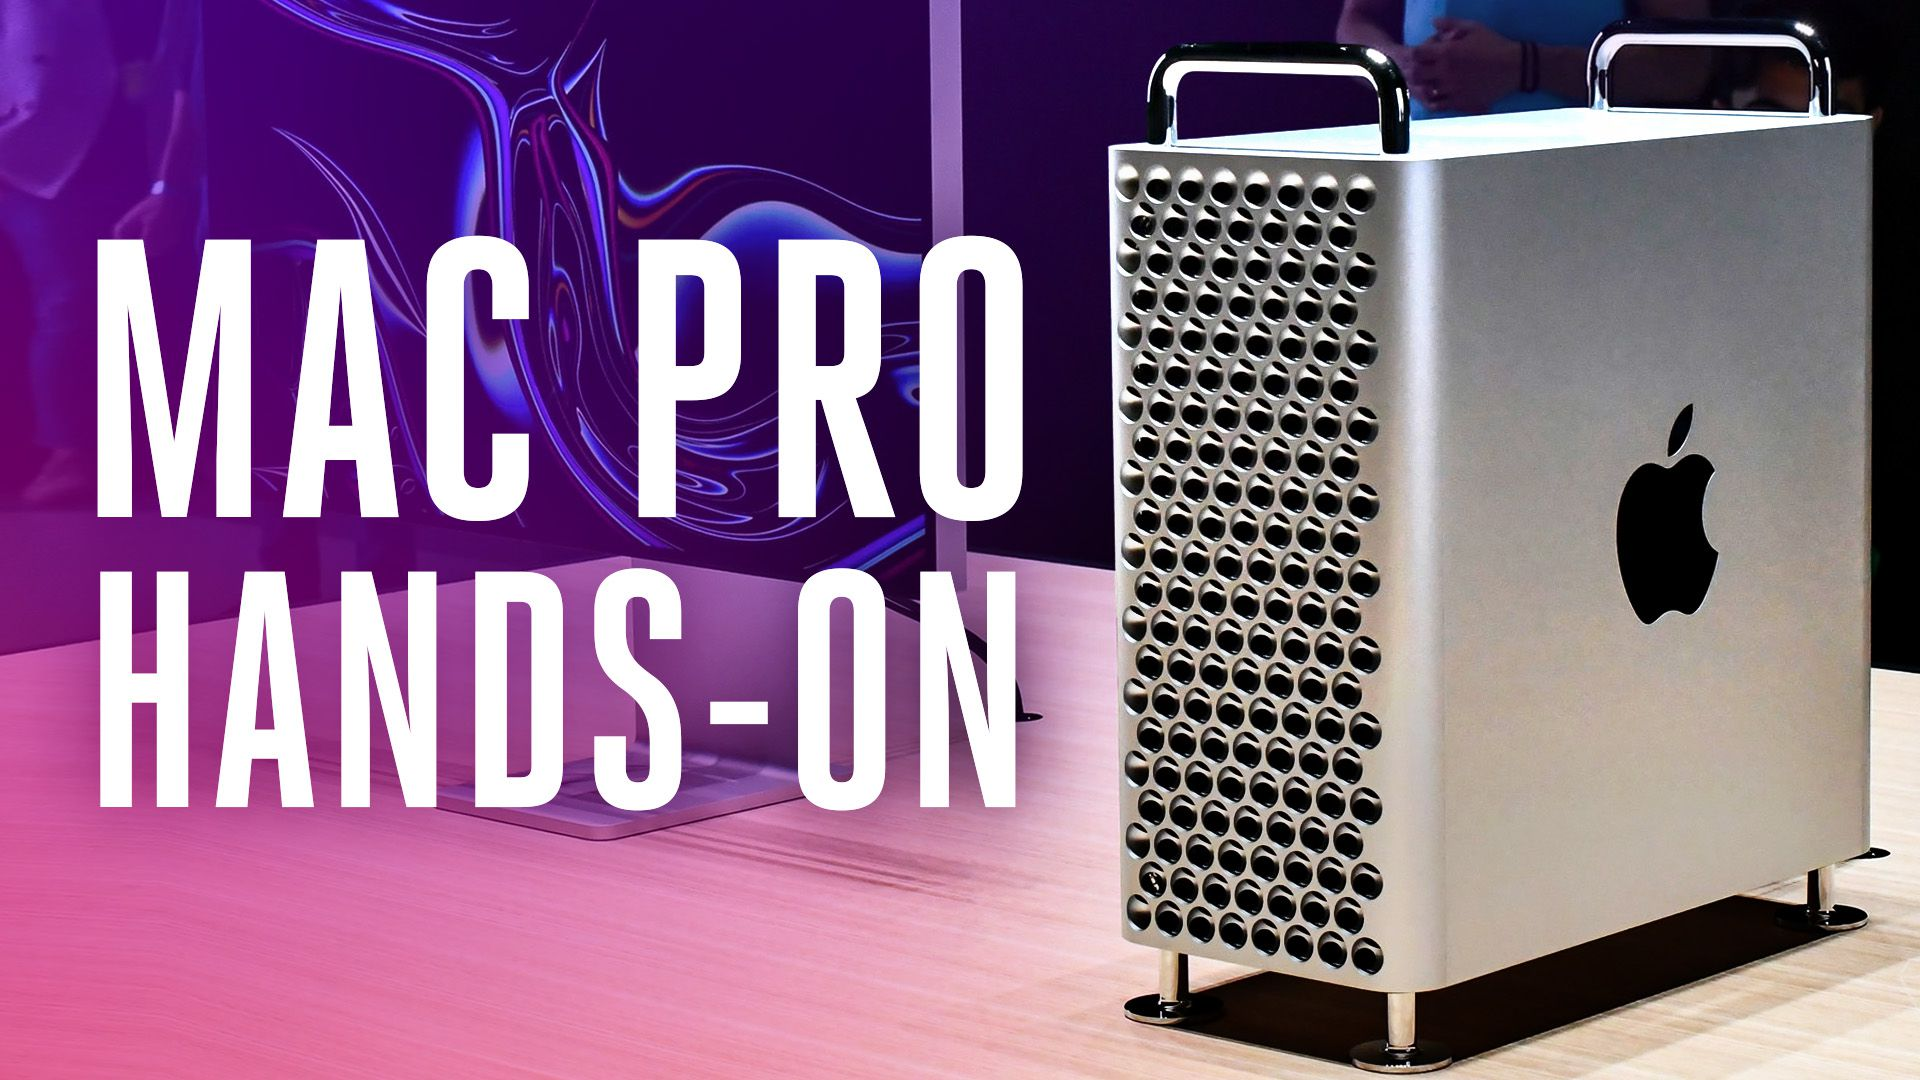 Apple announces all-new redesigned Mac Pro, starting at